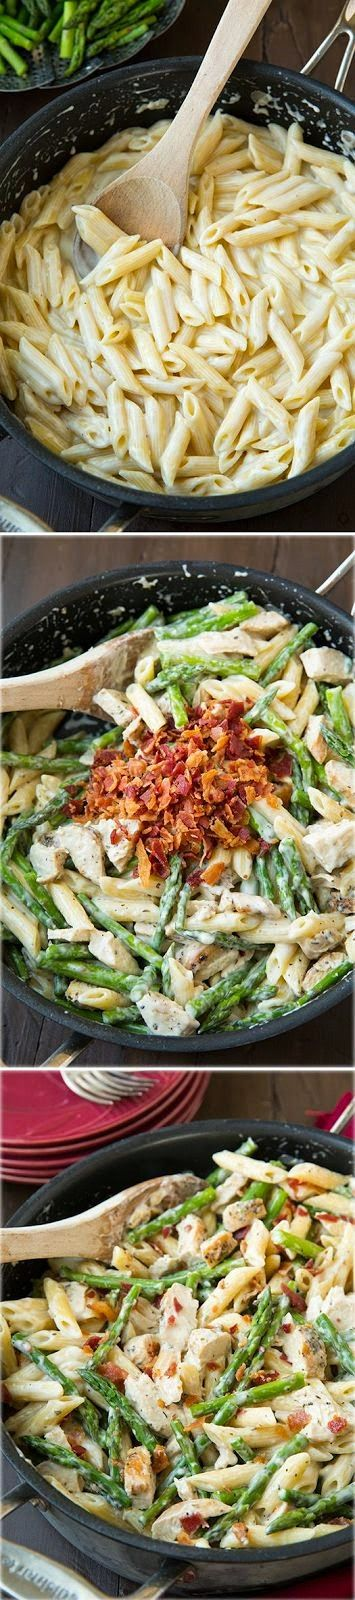 Activity Mix: Creamy Chicken and Asparagus Pasta with Bacon